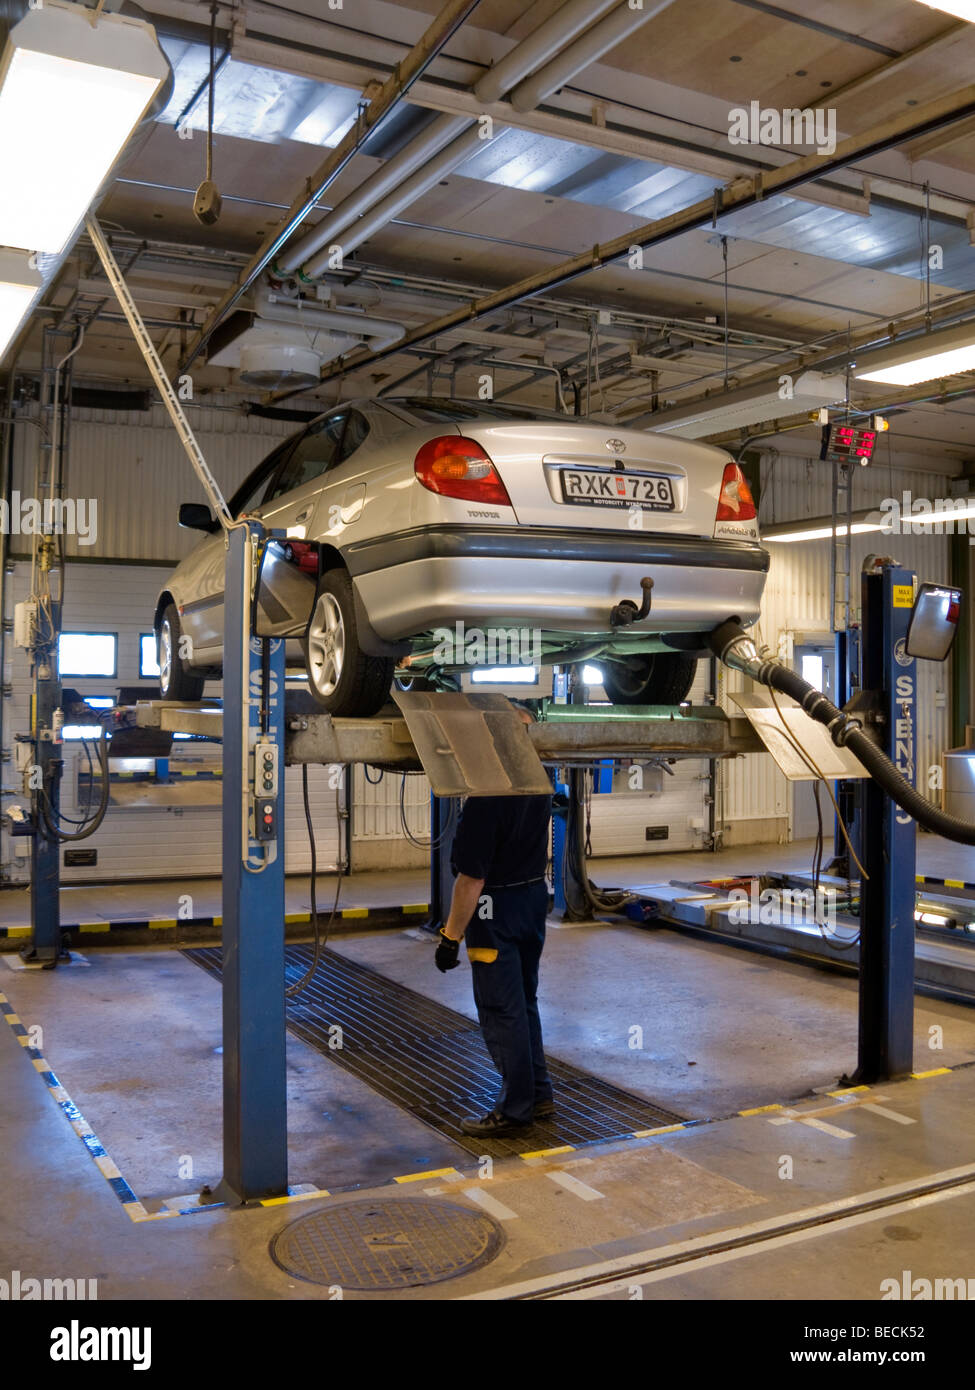 A Toyota being inspected by the Swedish Motor Vehicle Inspection Company - Bilprovningen. - Stock Image